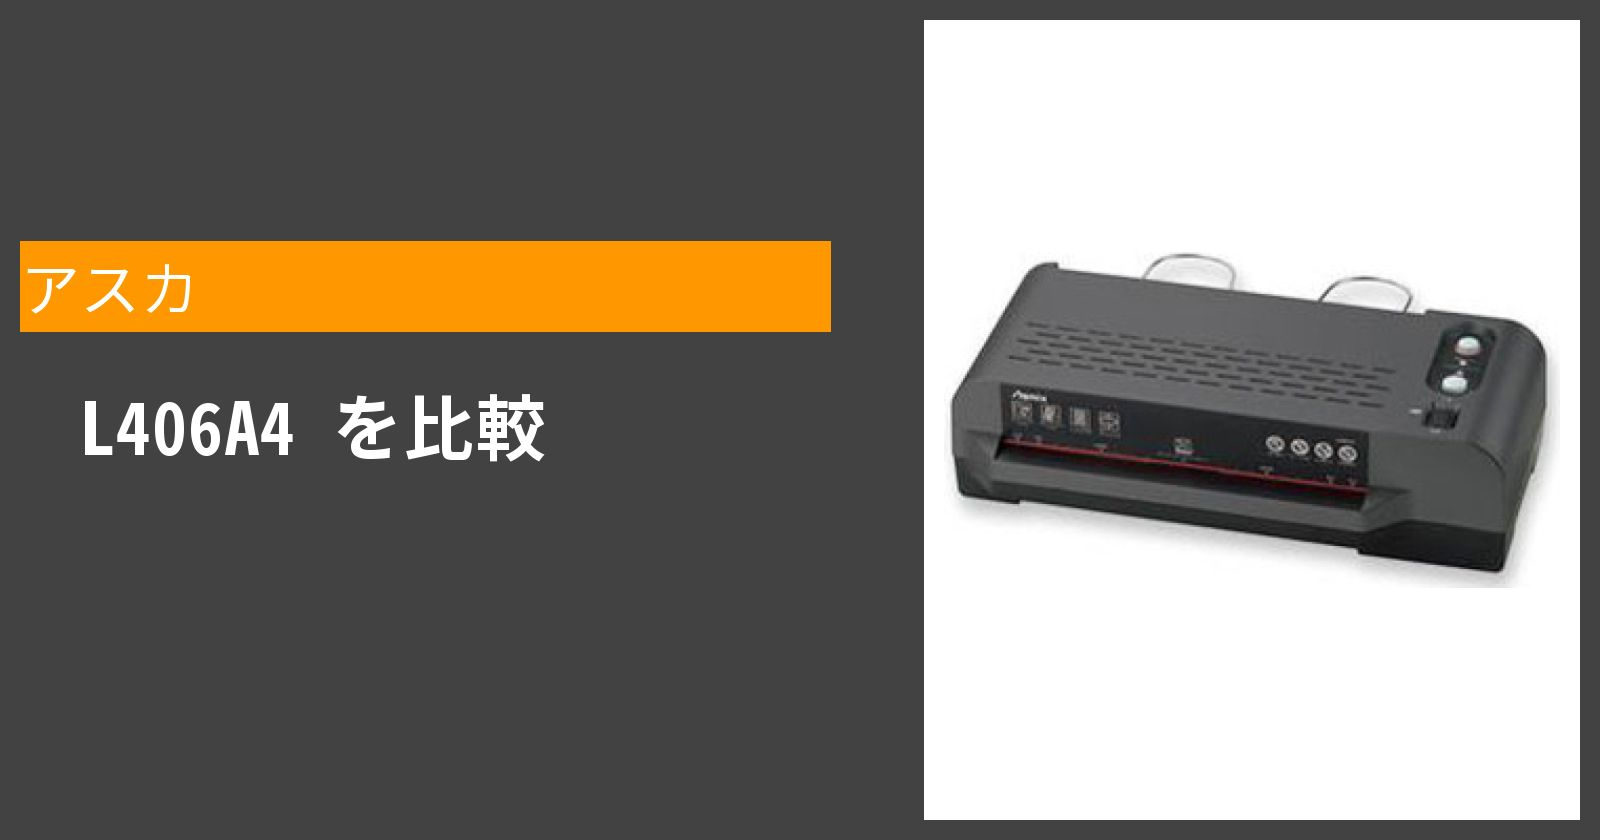 L406A4を徹底評価